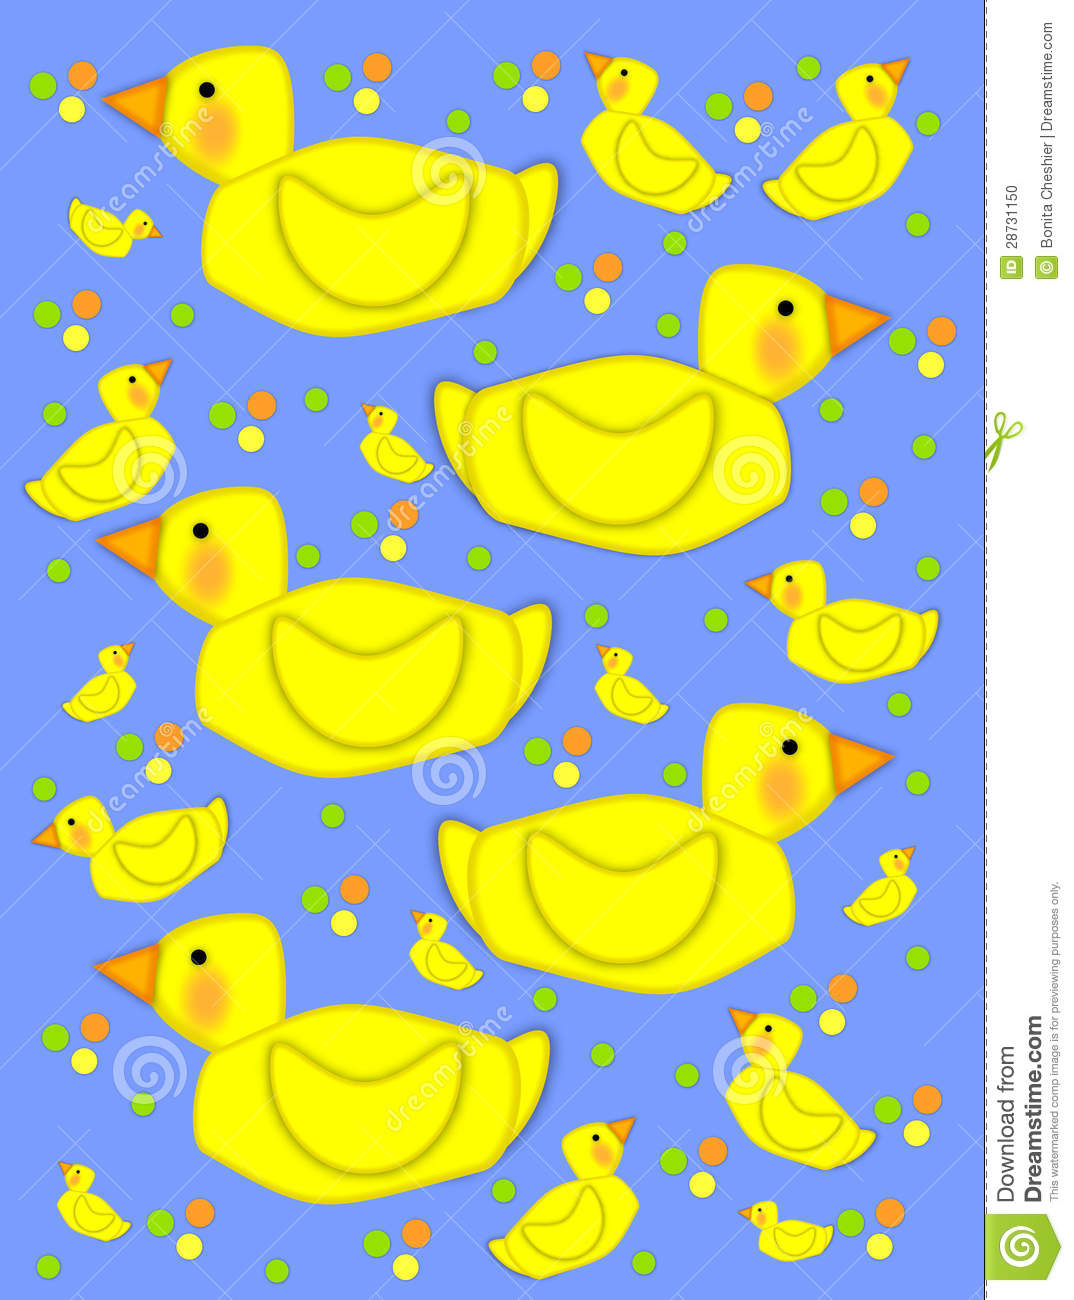 Bathtime duck on baby blue stock illustration. Illustration of cute ...